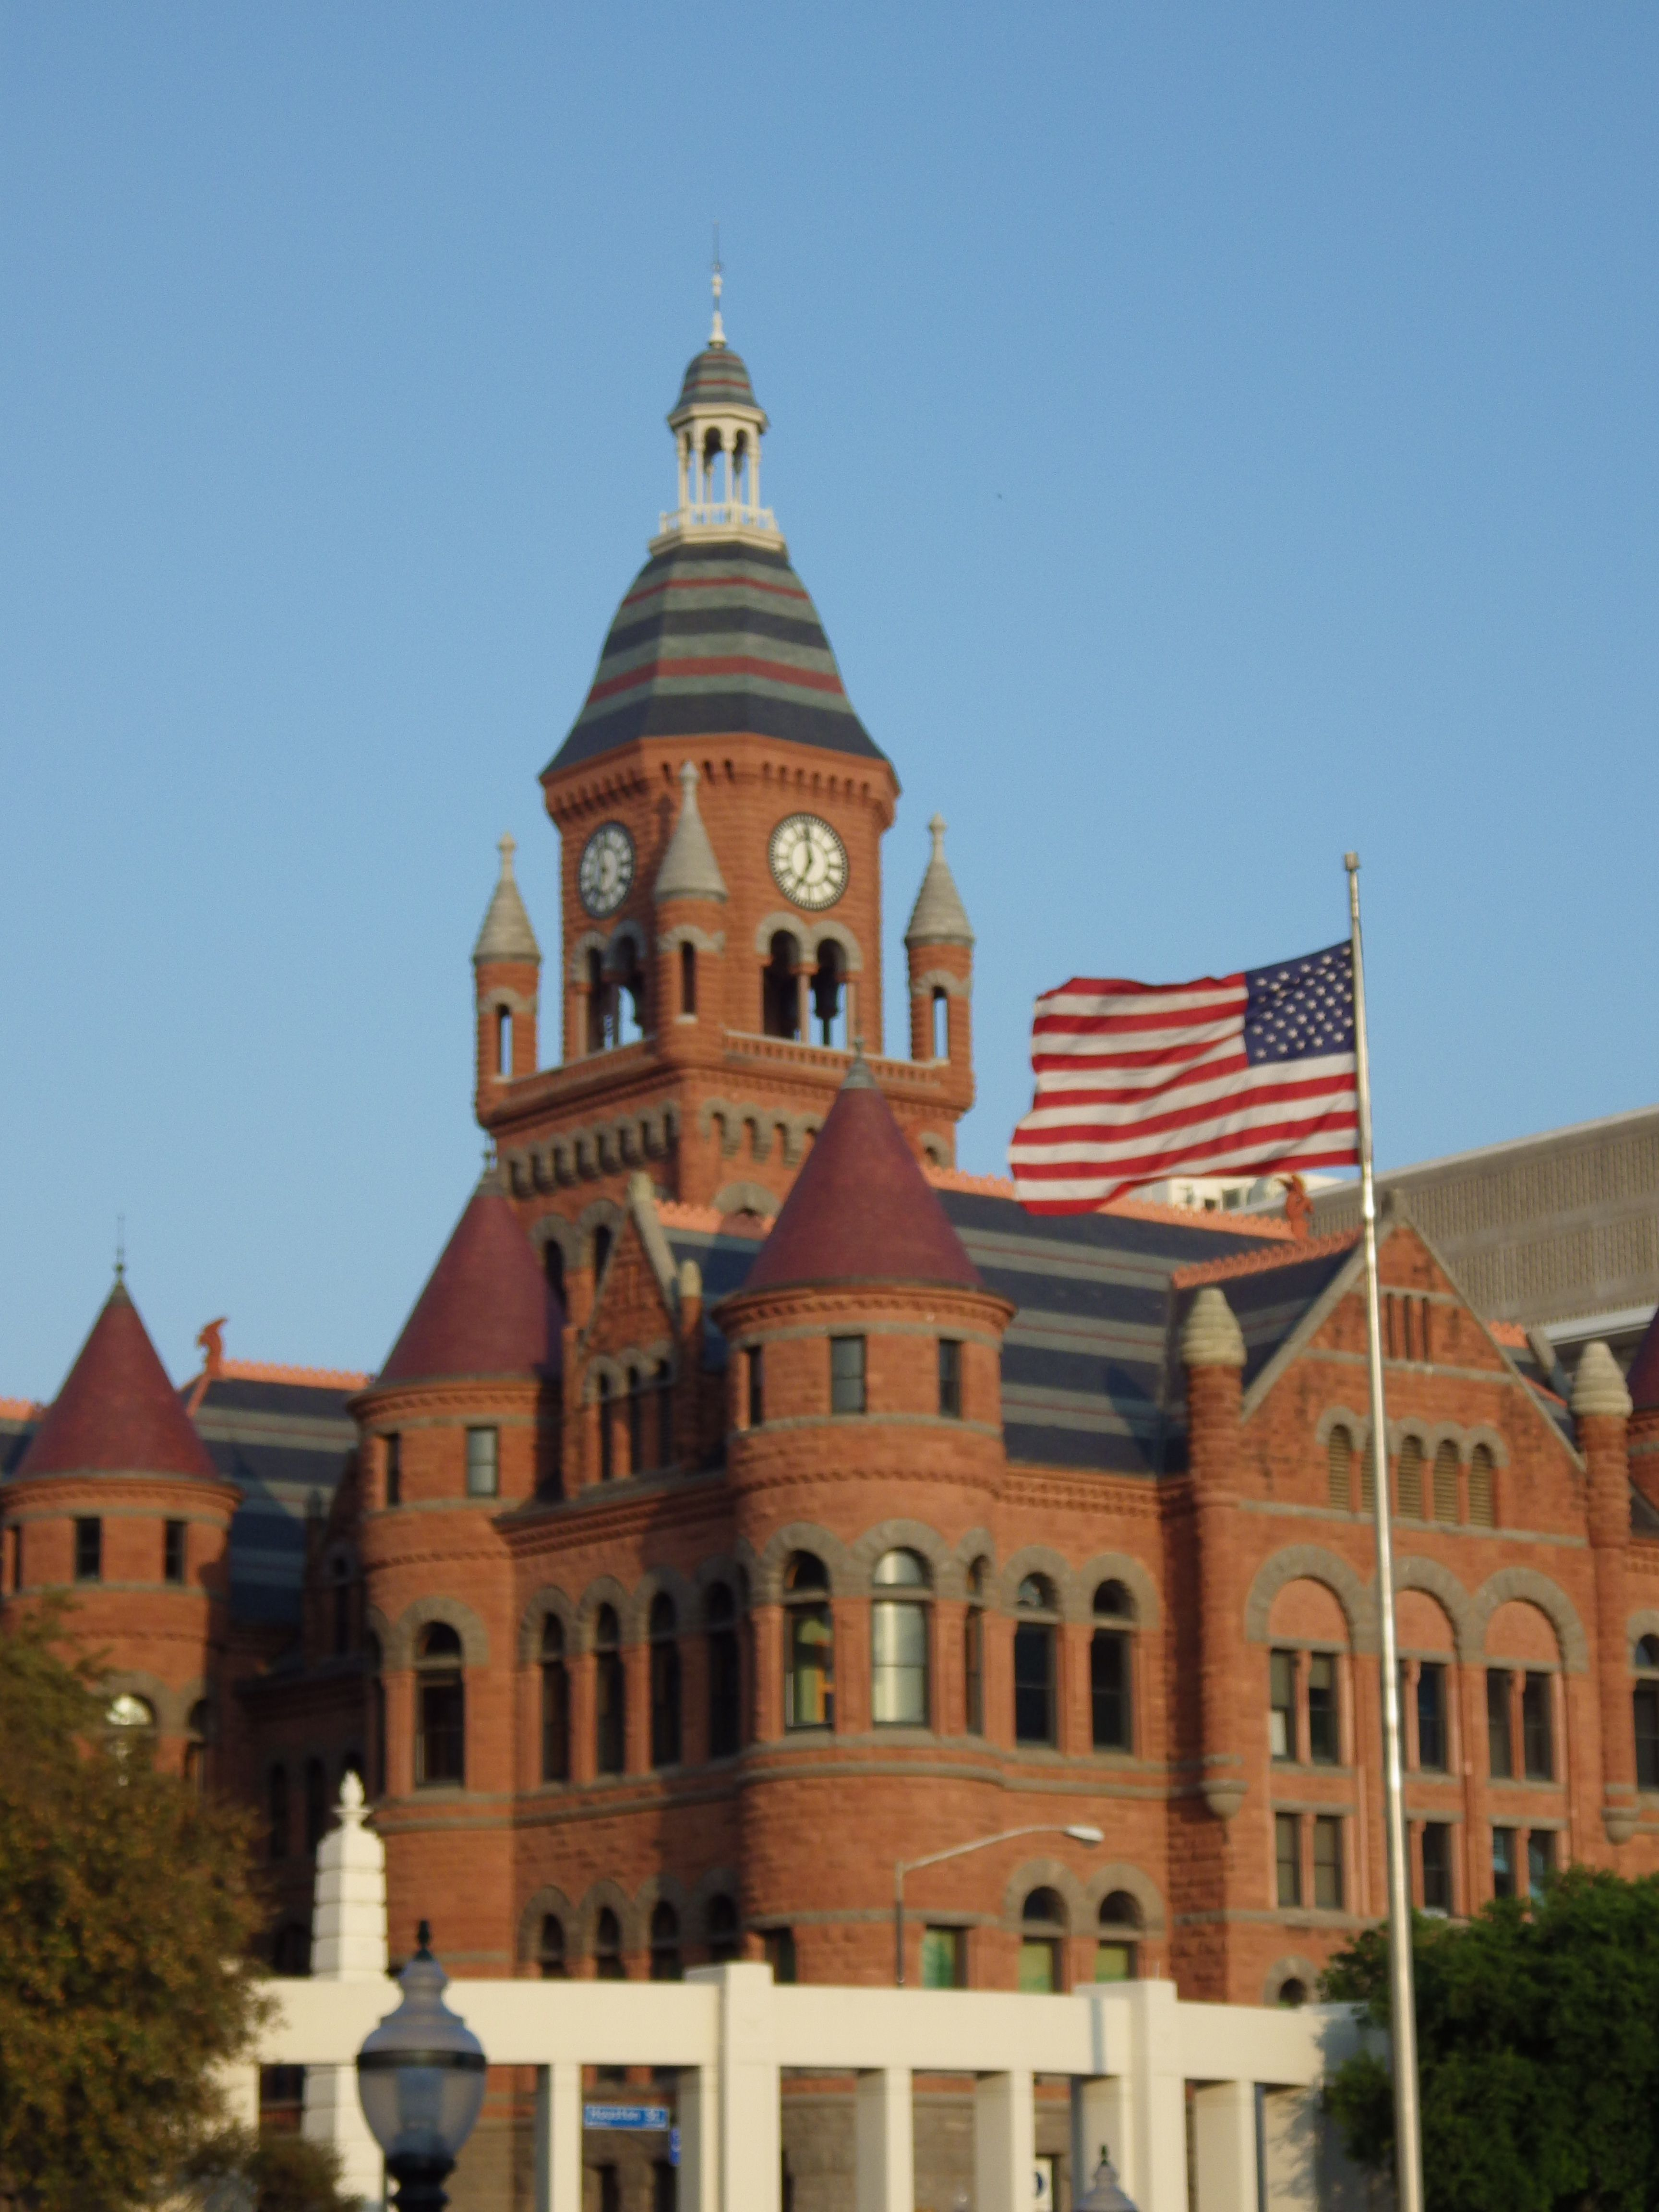 Old Red Museum located in downtown Dallas at Dealey Plaza